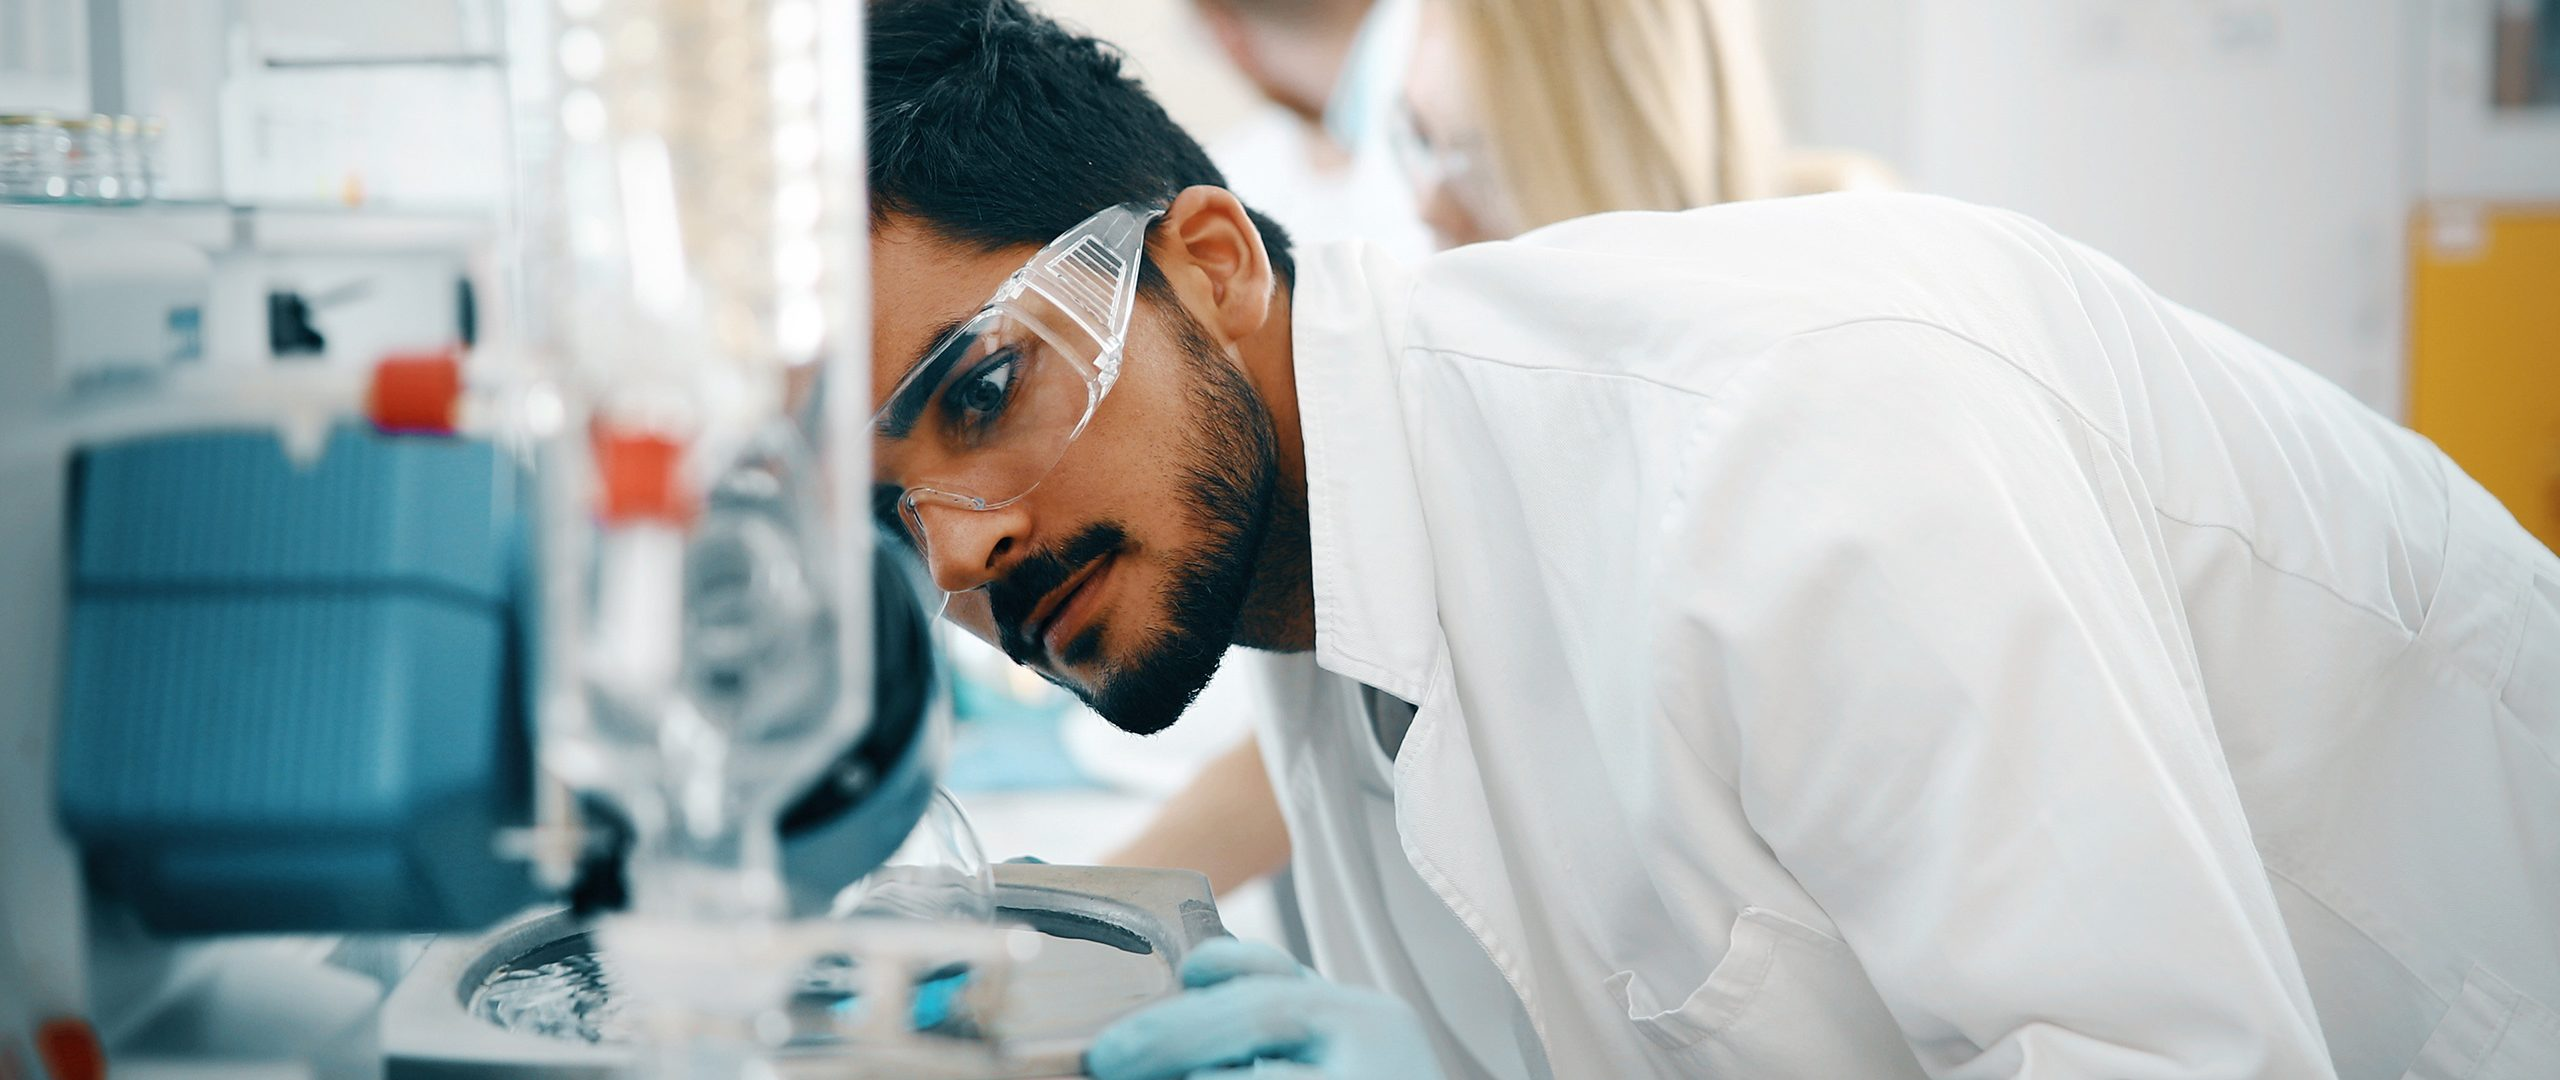 A technician in a lab coat leans in to examine a piece of laboratory equipment.